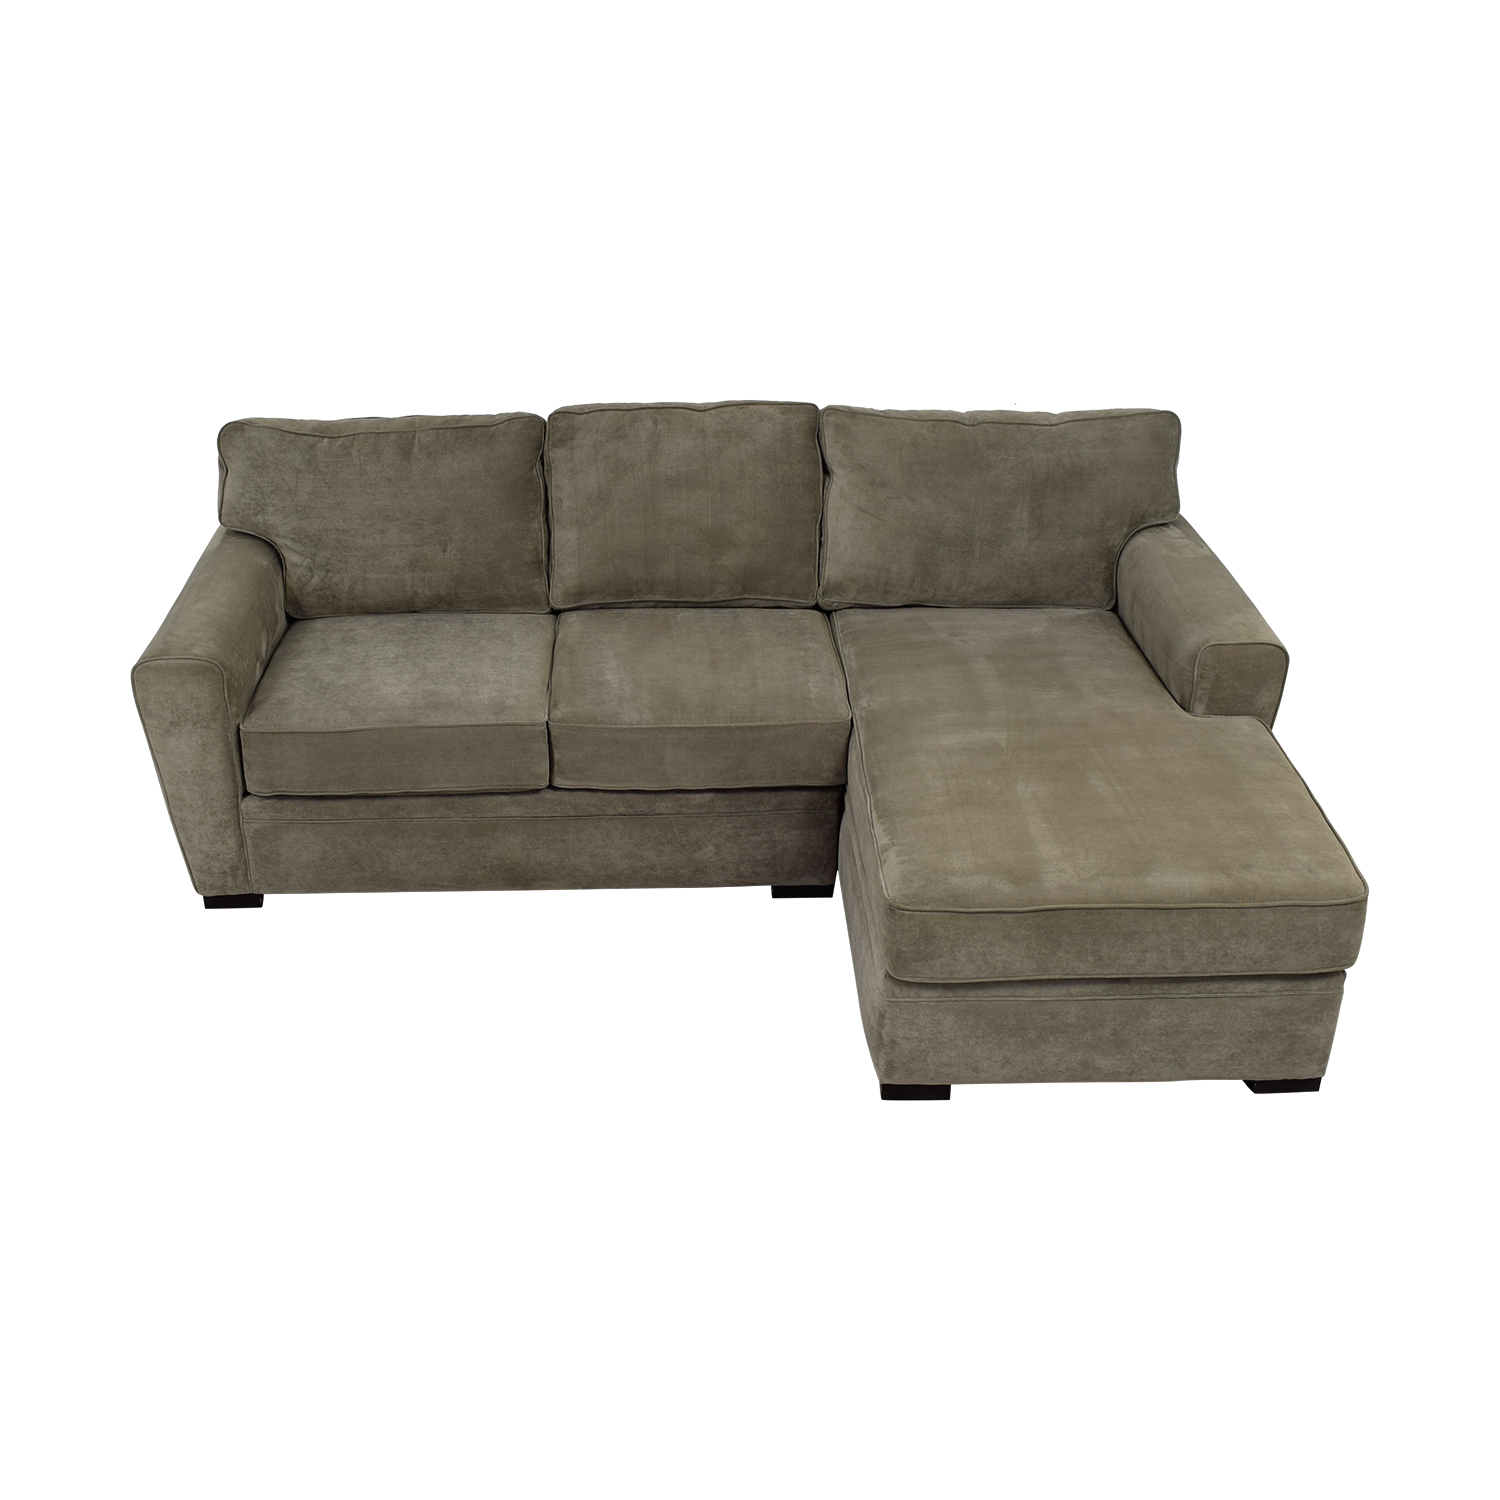 Raymour & Flanigan Raymour & Flanigan Grey Microsuede Chaise Sectional